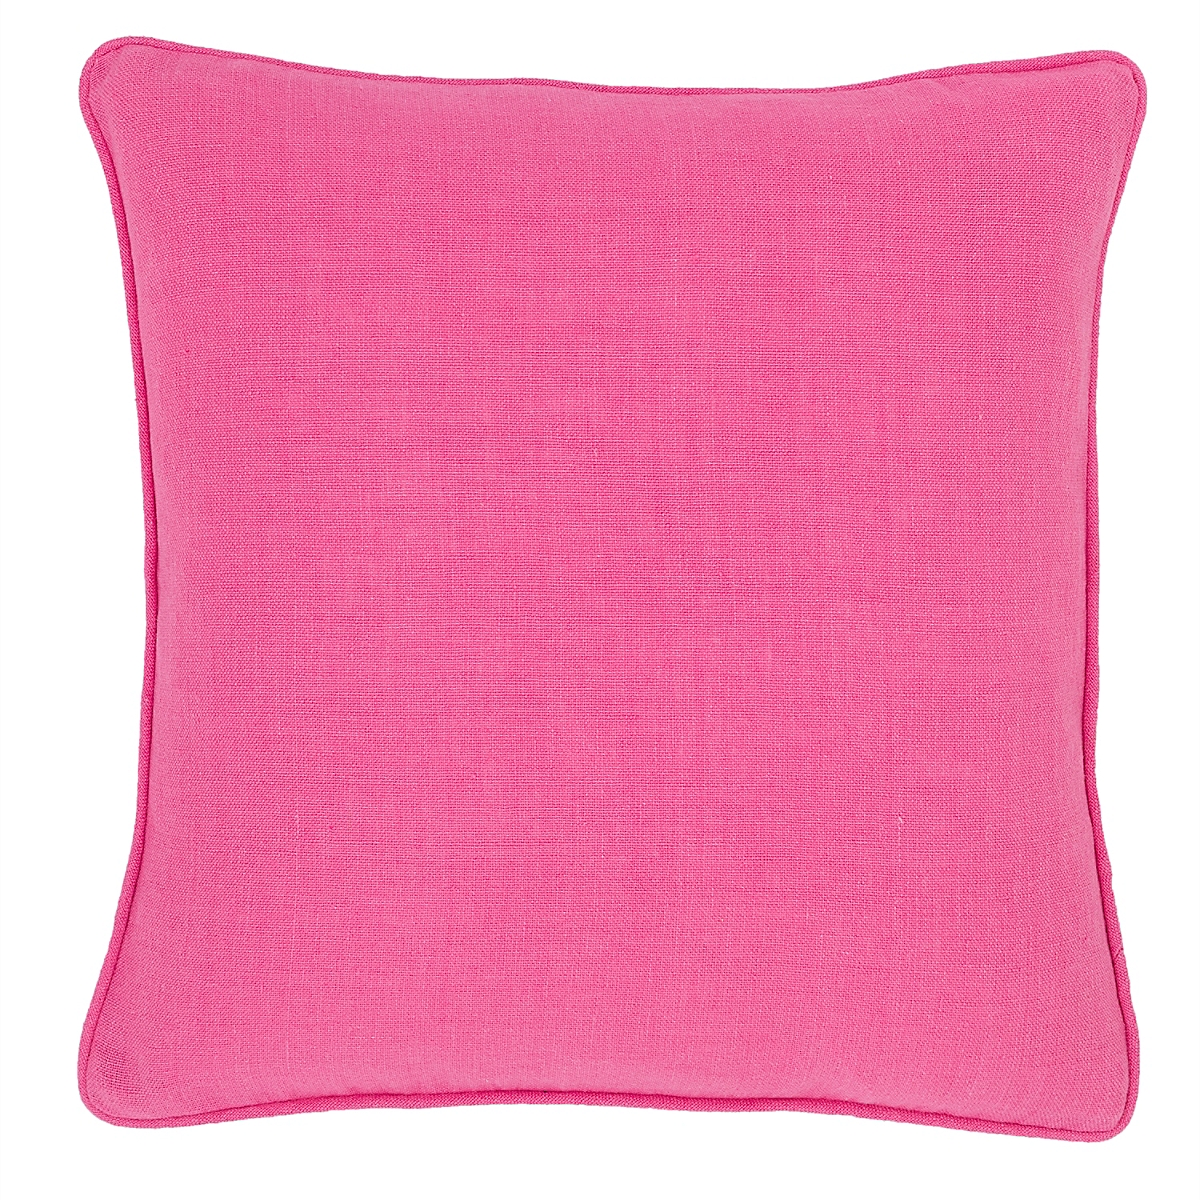 Stone Washed Linen Fuchsia Decorative Pillow